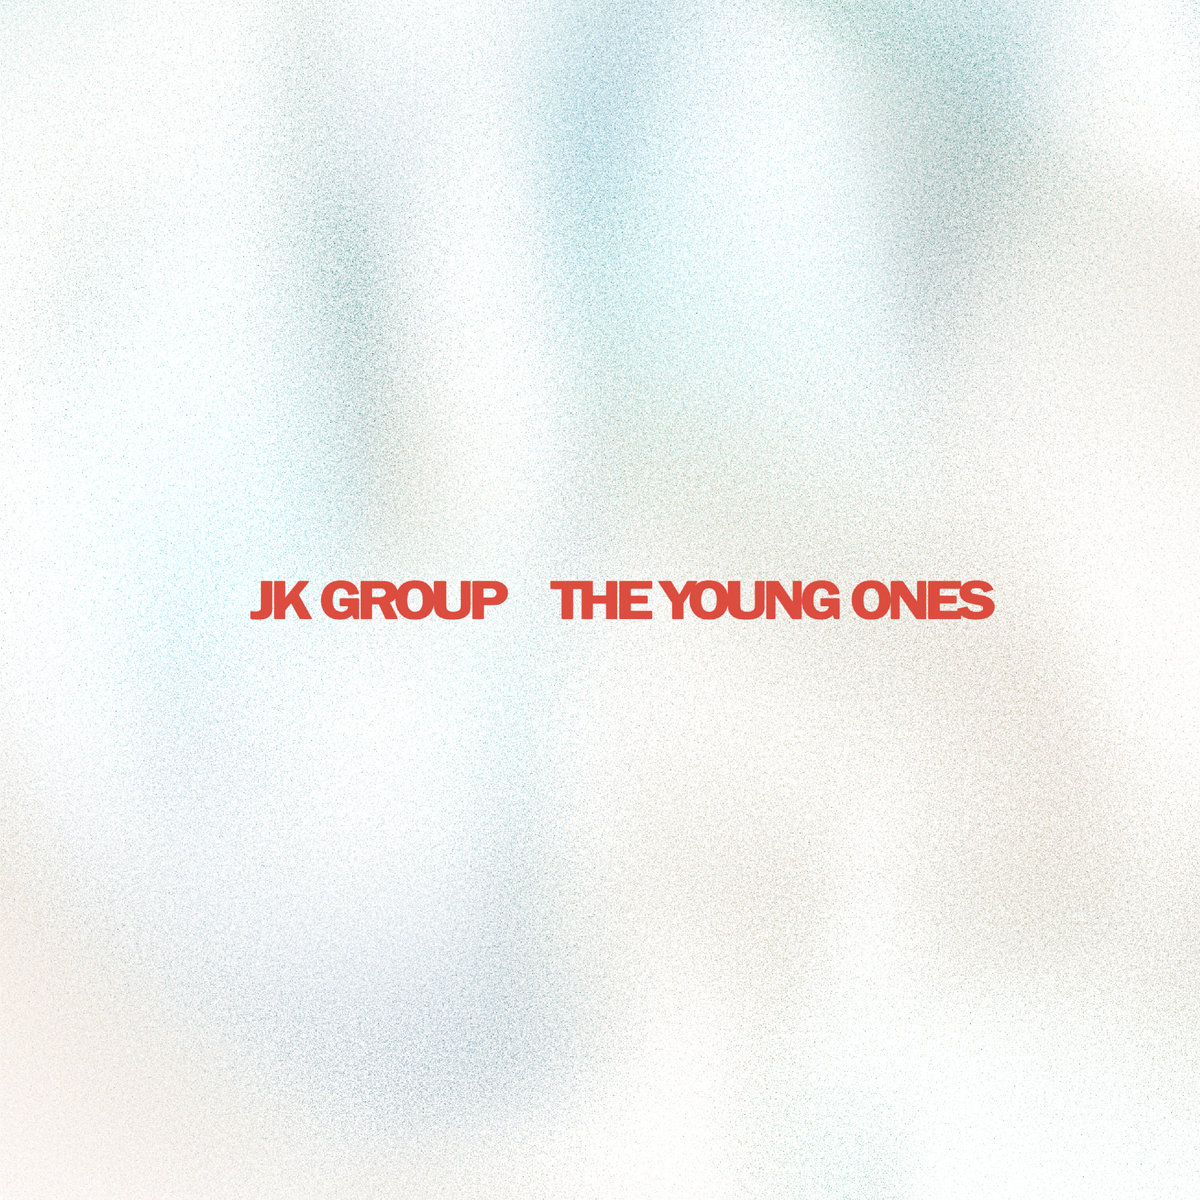 JK Group | The Young Ones